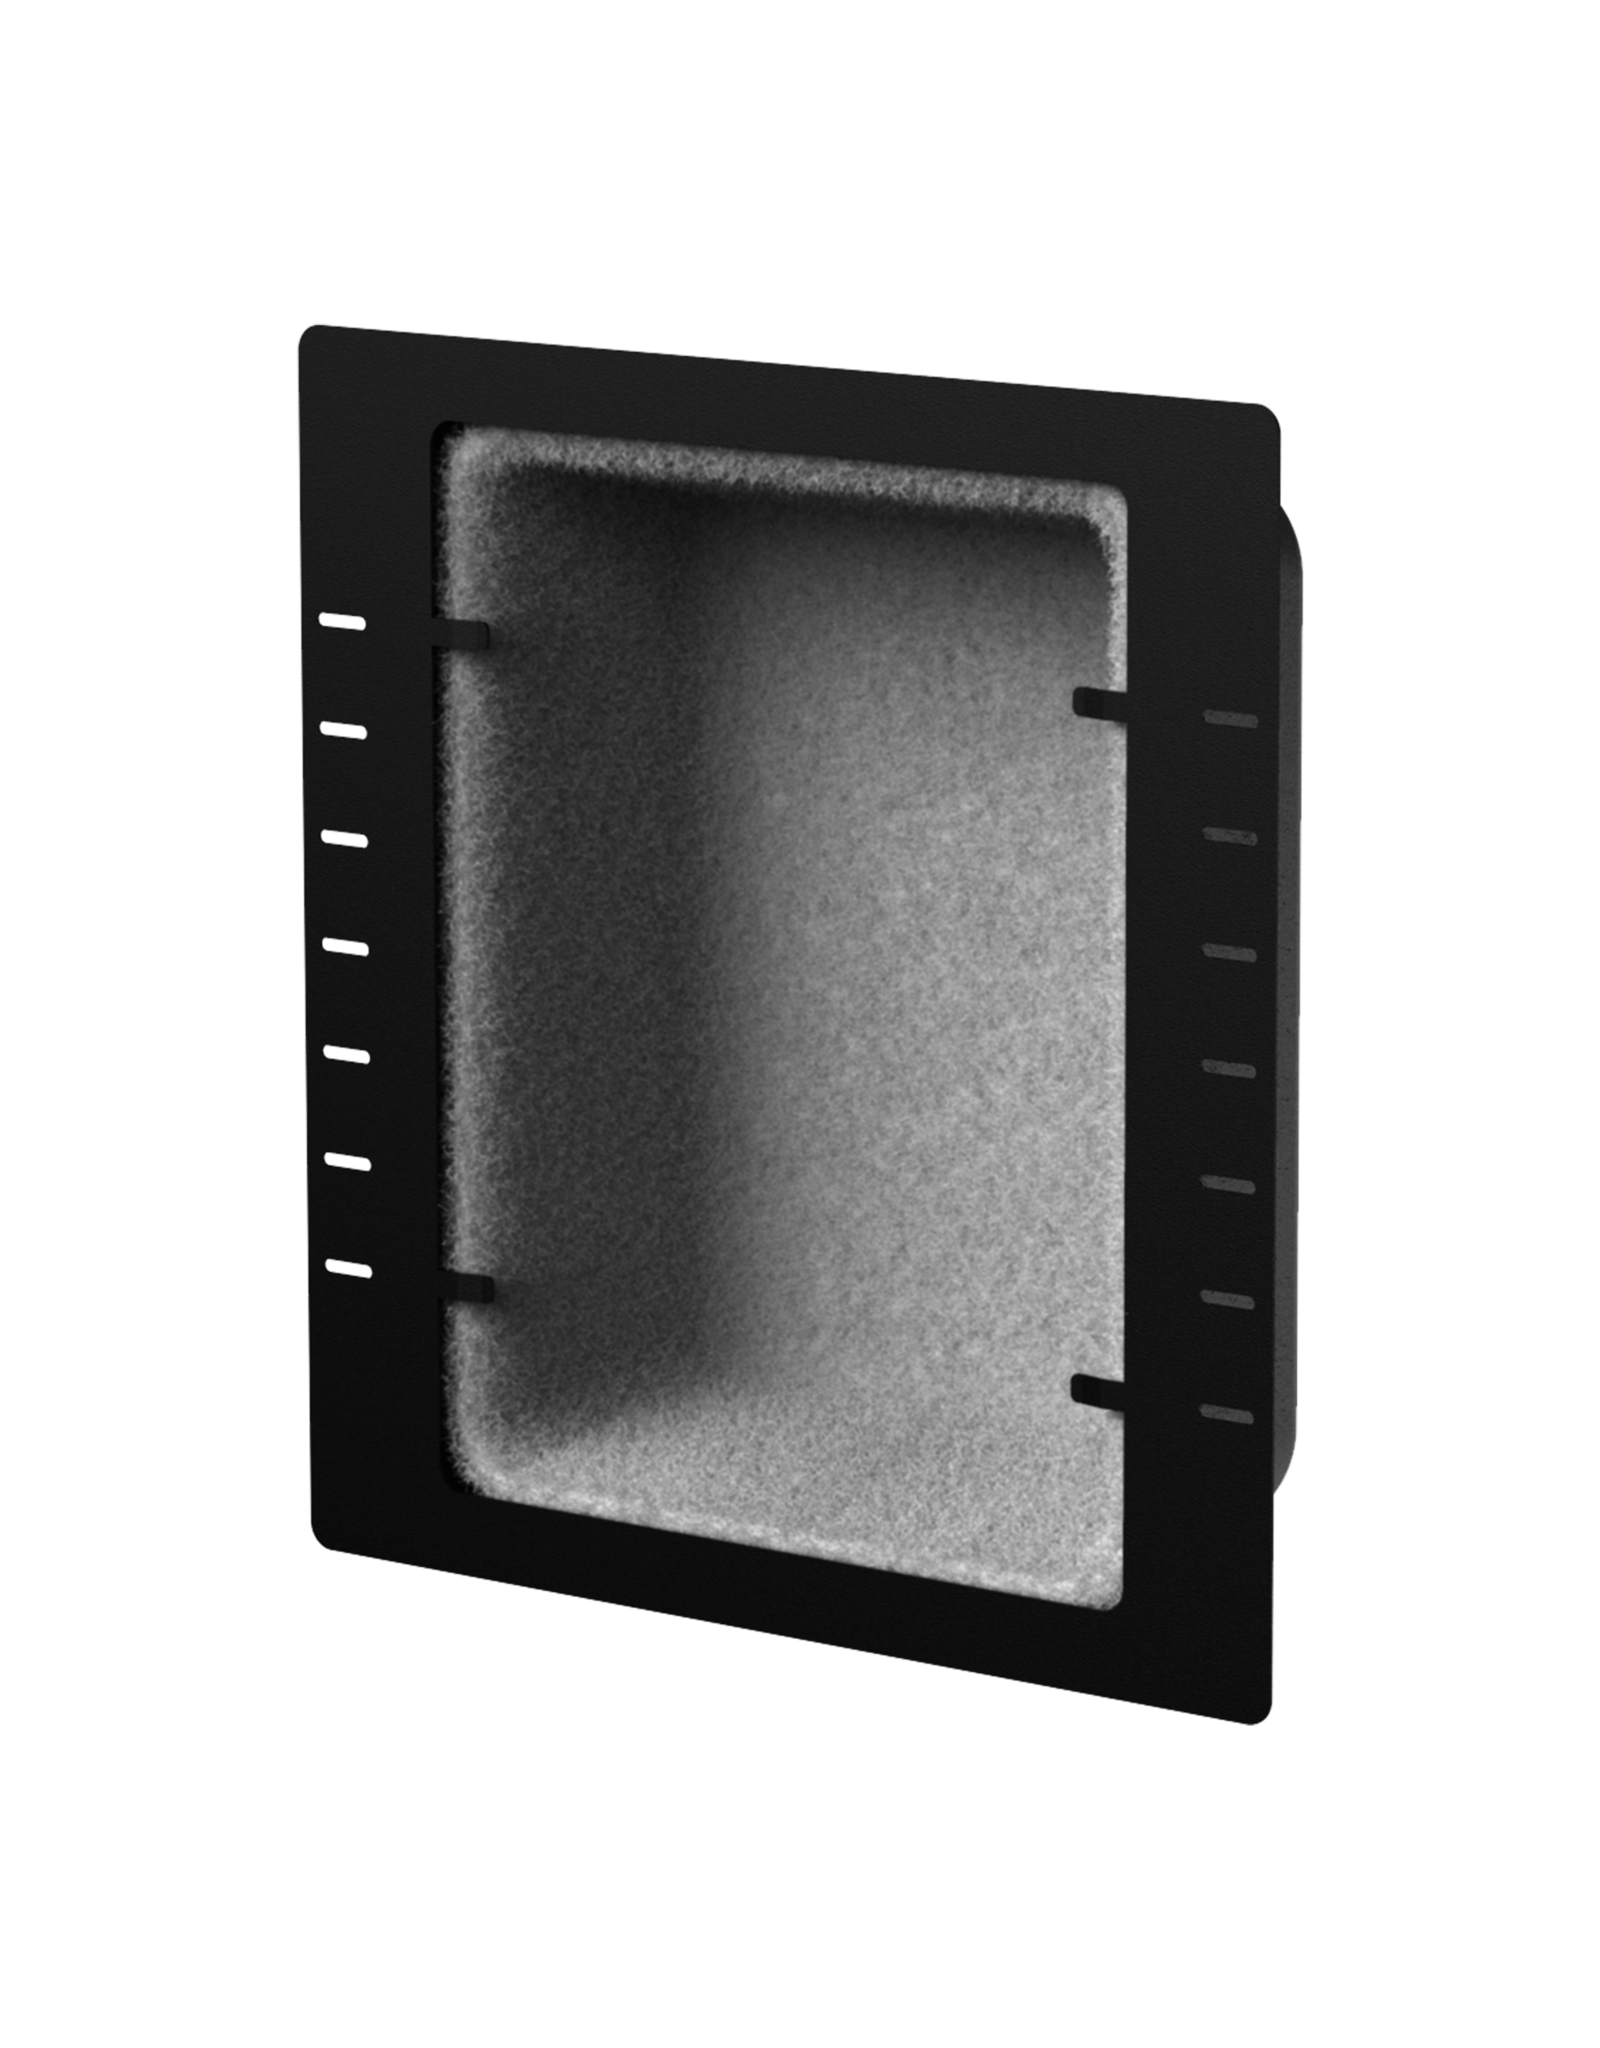 Audac Metal in ceiling/wall back box for flush mount speakers - Fire rated